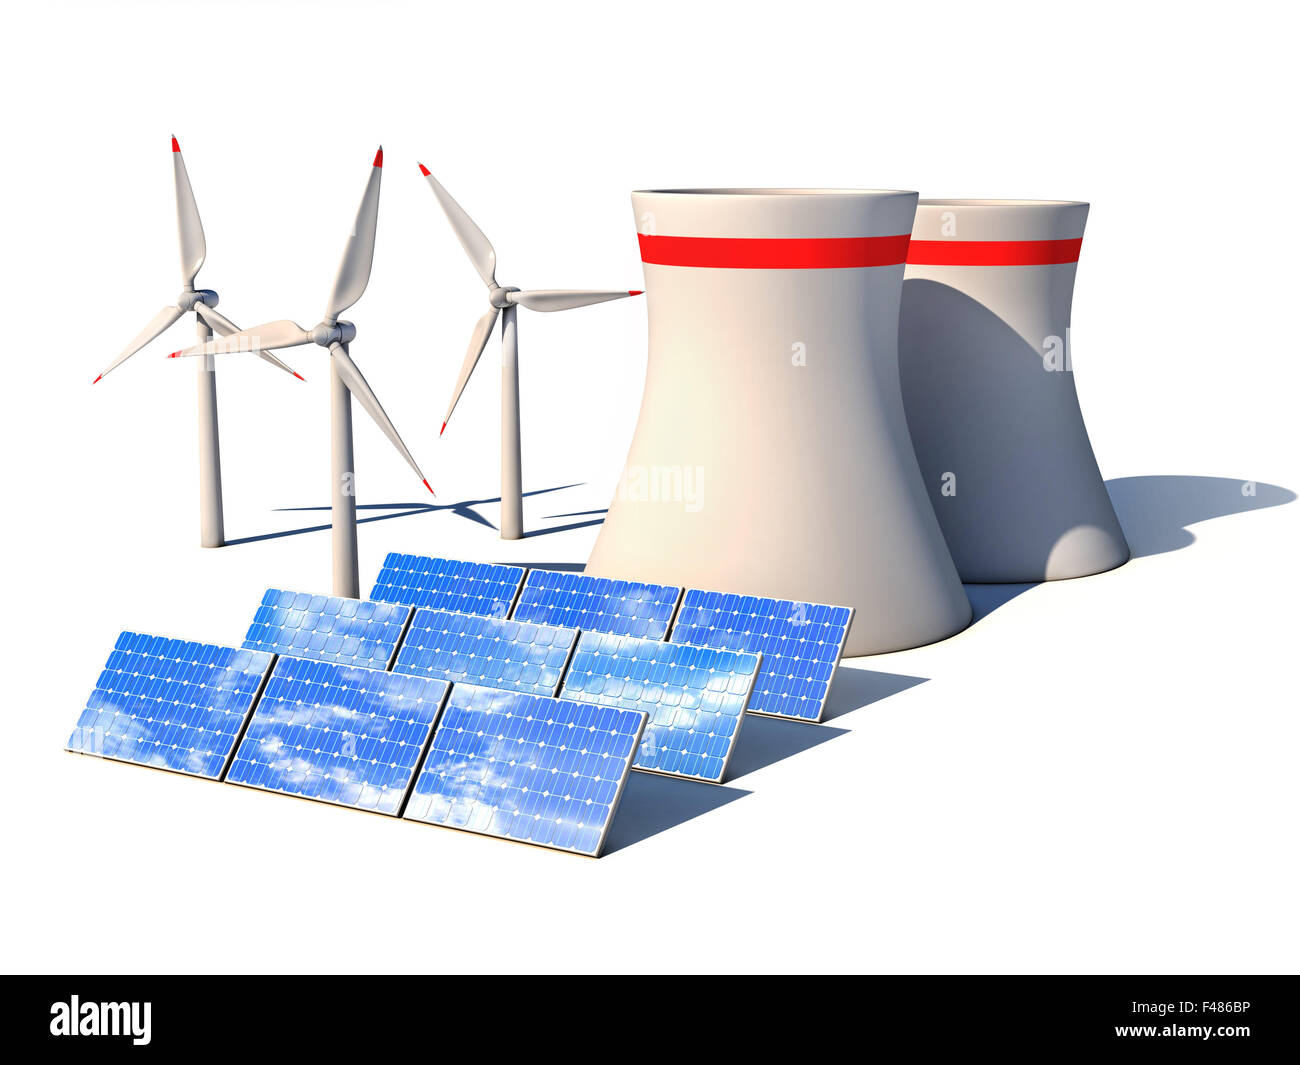 alternative energy 3d concept - Wind power station nuclear power plant and  solar panels against white